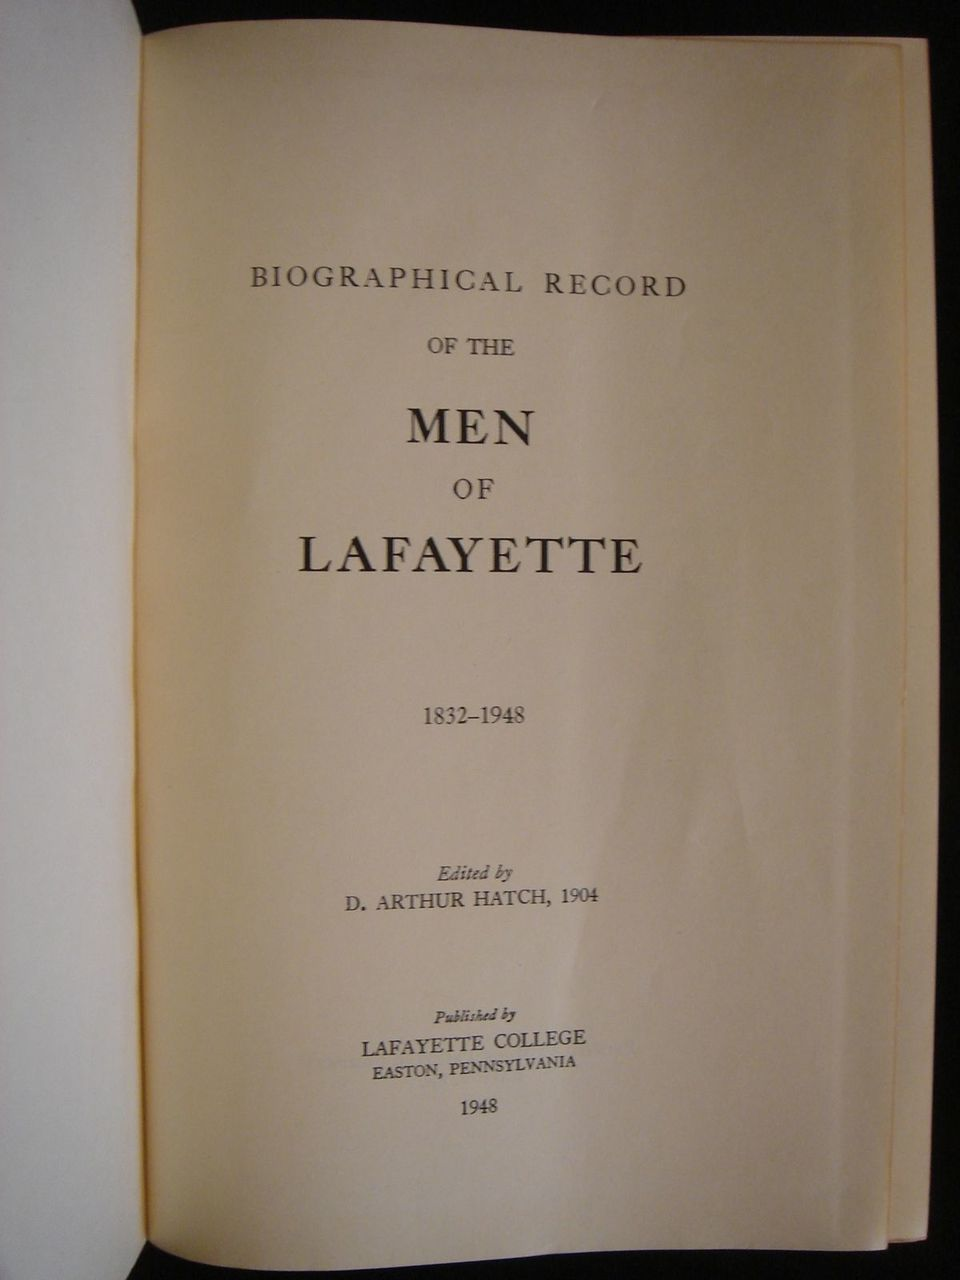 Biographical Record of the Men of Lafayette D Arthur Hatch College History 1948